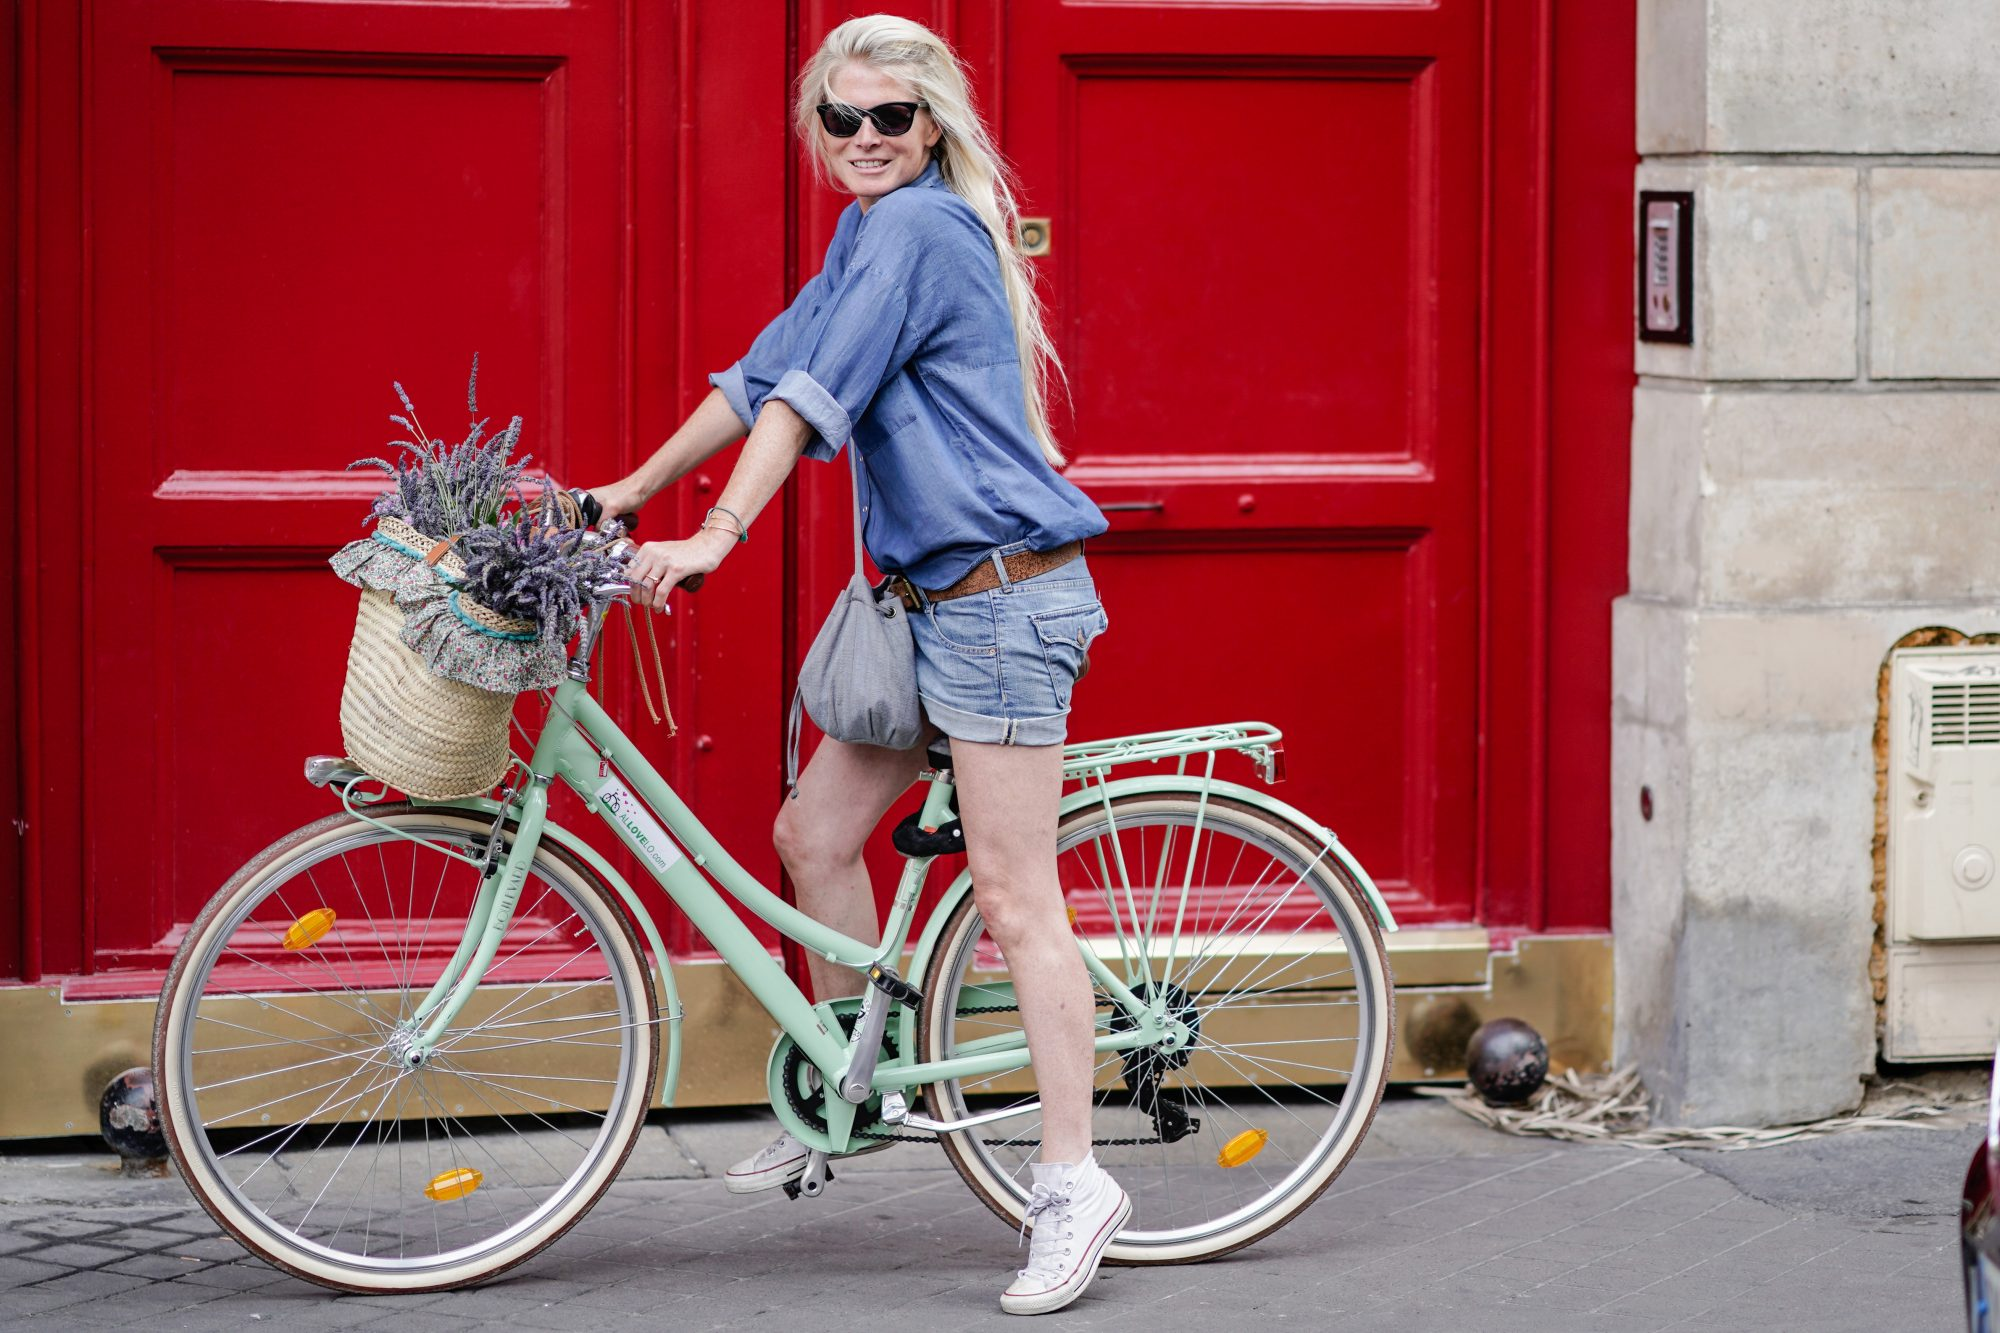 Cycle Chic: Merchandising for Movement